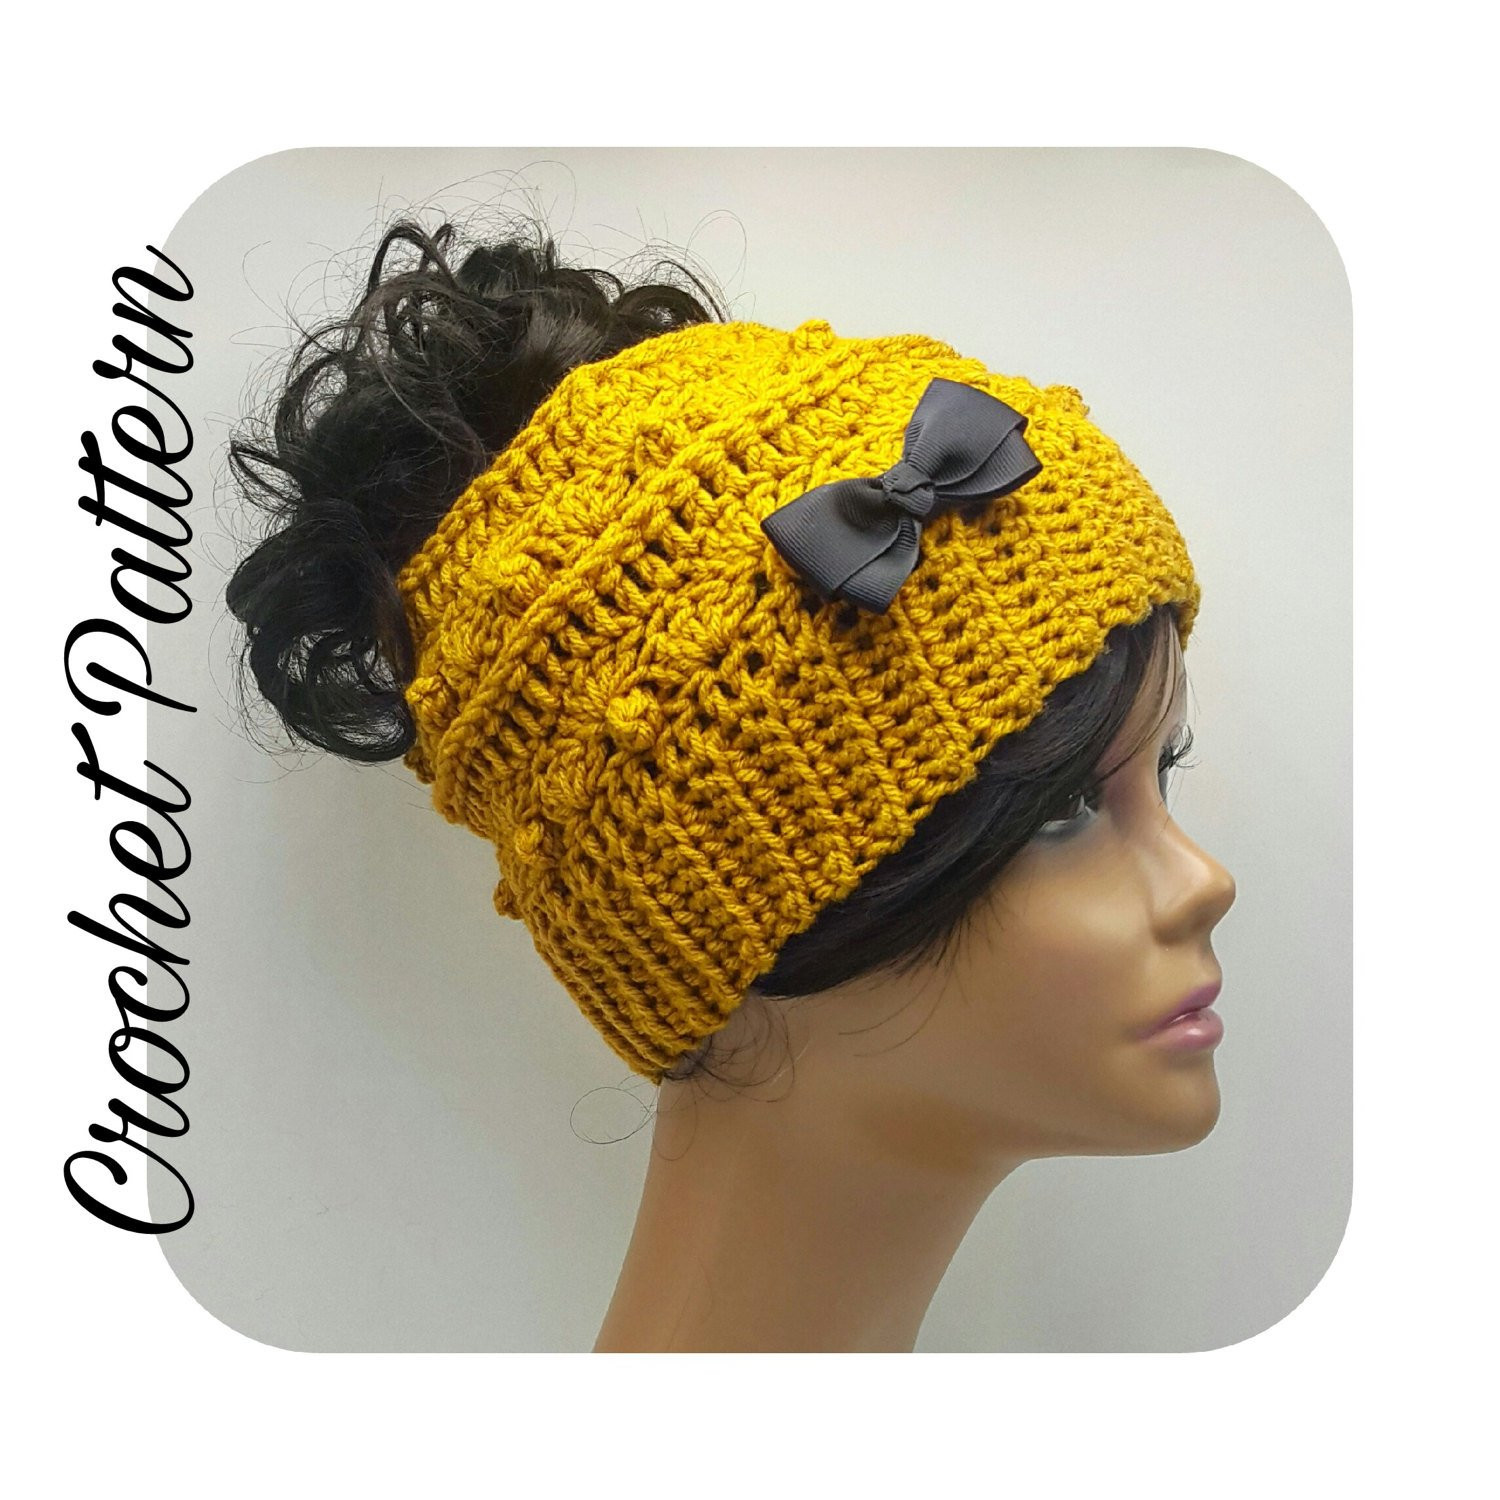 Lovely Crochet Pattern Messy Bun Beanie Ponytail Beanie Crochet Bun Beanie Crochet Pattern Of Charming 42 Pics Bun Beanie Crochet Pattern